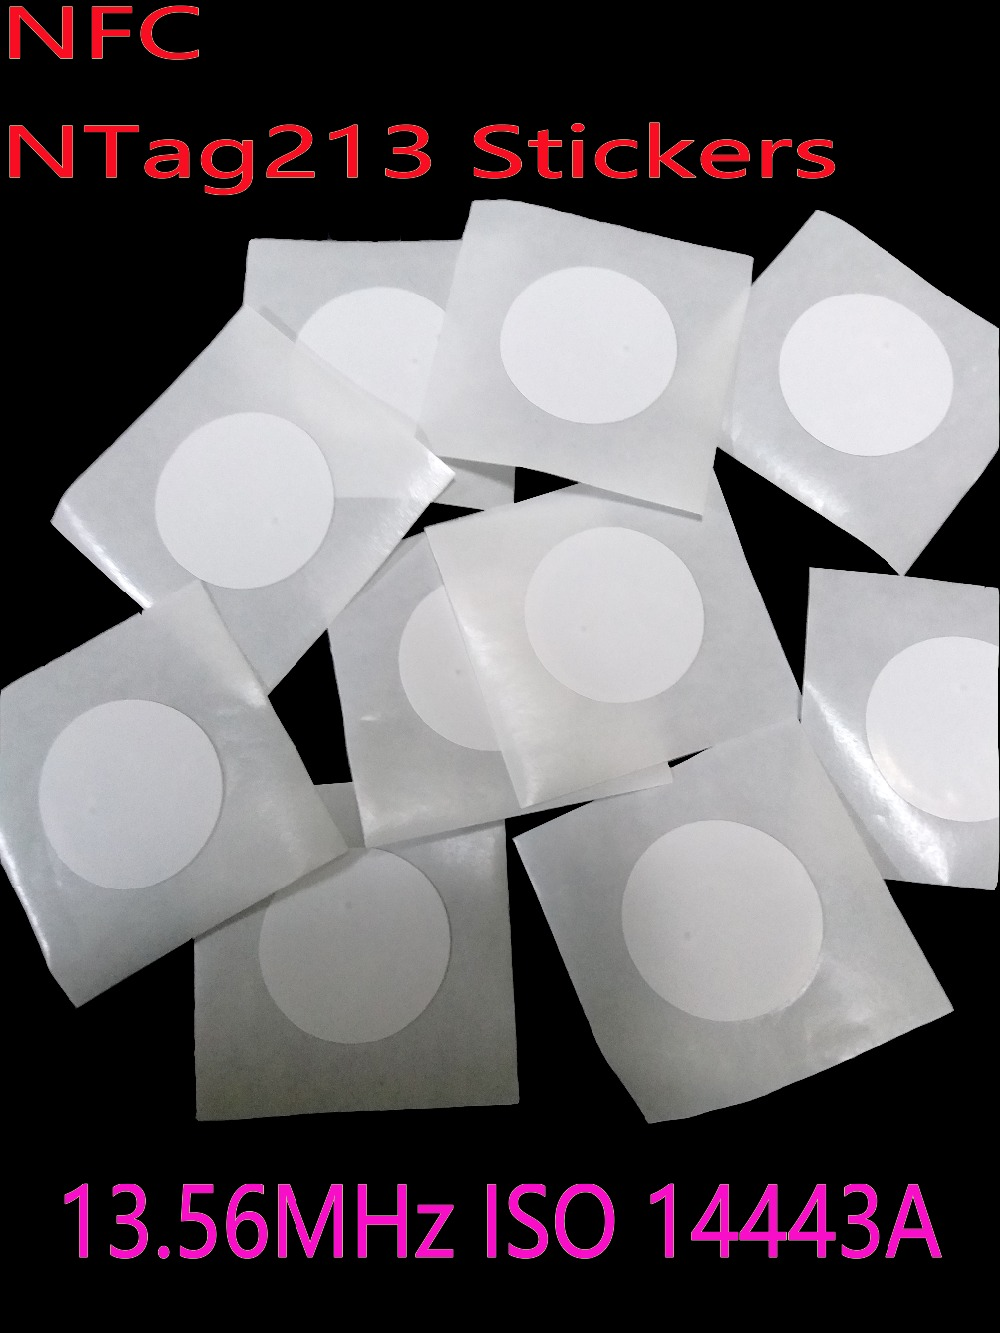 10pcs/Lot NTAG 213 NFC Tags Rewritable Ntag213 NFC Tag Sticker 13.56MHz ISO14443A 25mm All NFC Phone Available Adhesive Labels